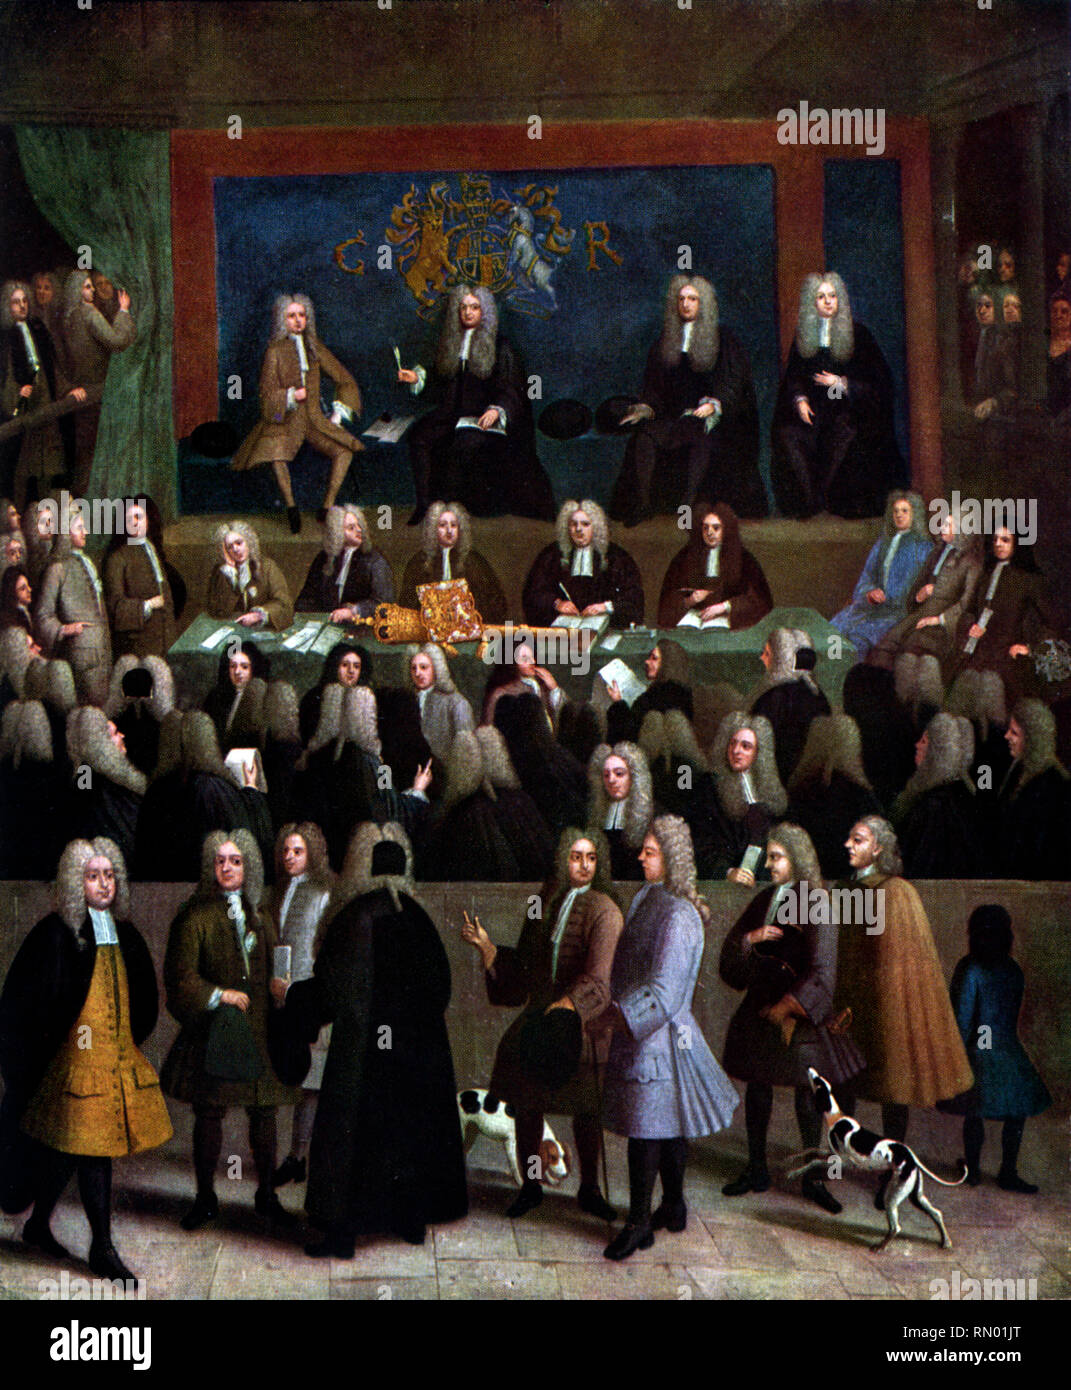 The Court of Chancery during the reign of George I, c1725. By Benjamin Ferrers (died 1732). The Court of Chancery was a court of equity in England and Wales that followed a set of loose rules to avoid the slow pace of change and possible harshness of the common law. By Benjamin Ferrers. - Stock Image